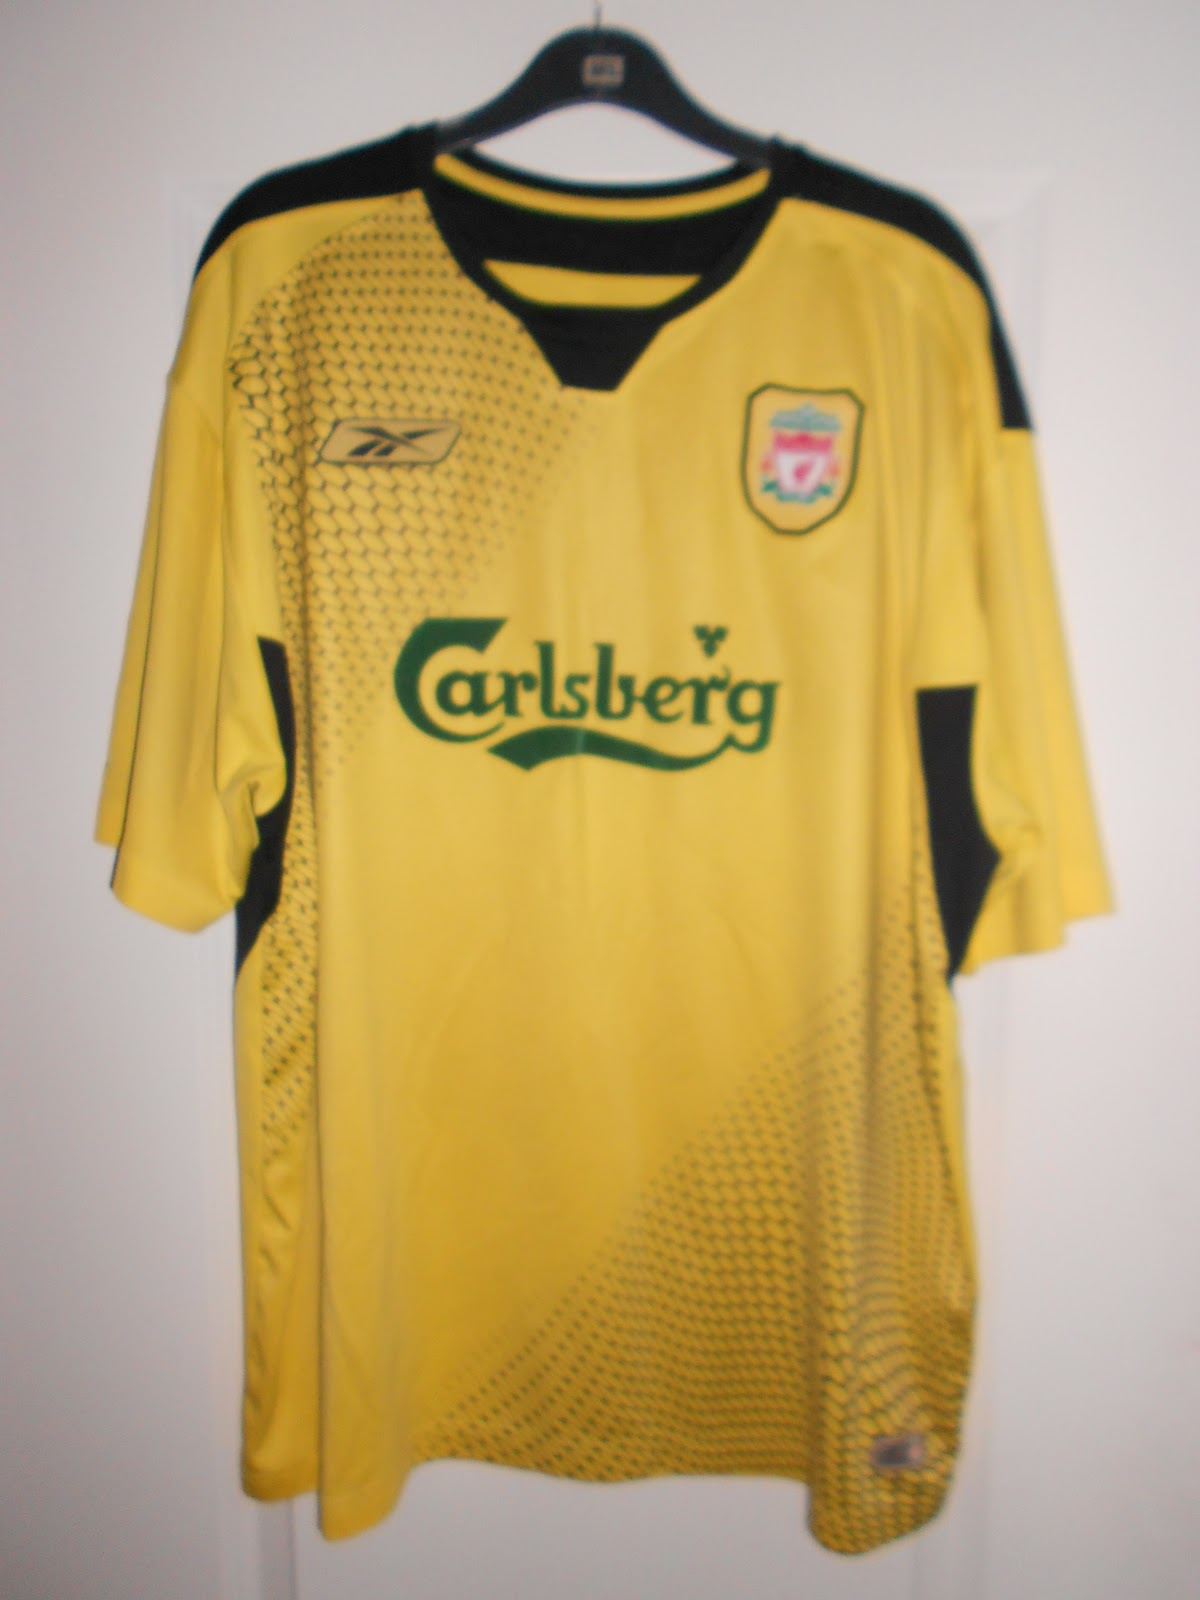 910e7fb9d2d My collection of football shirts  Liverpool Away 2004-2005